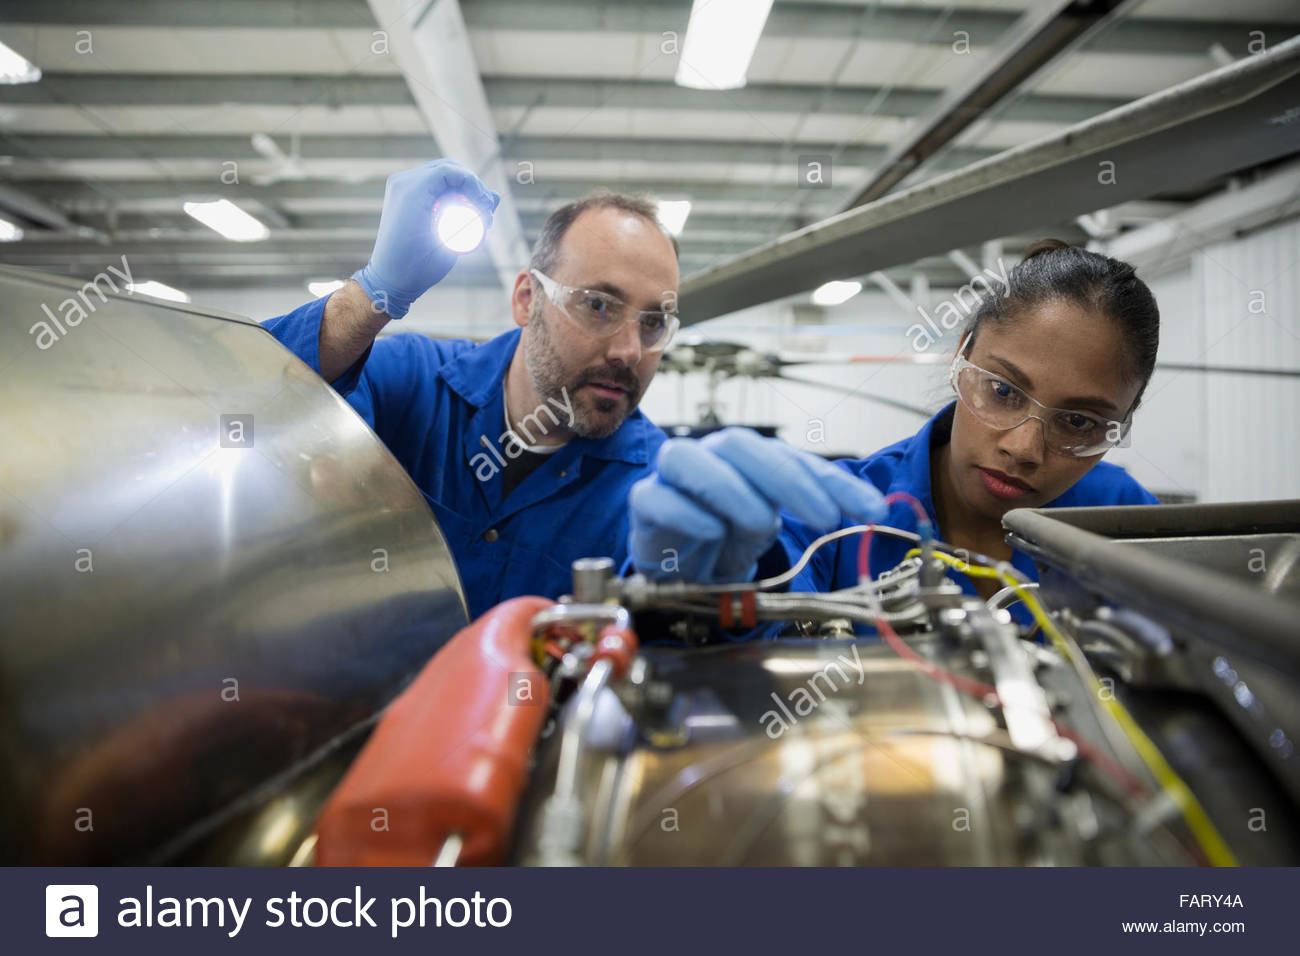 Helicopter mechanics working on part with flashlight - Stock Image